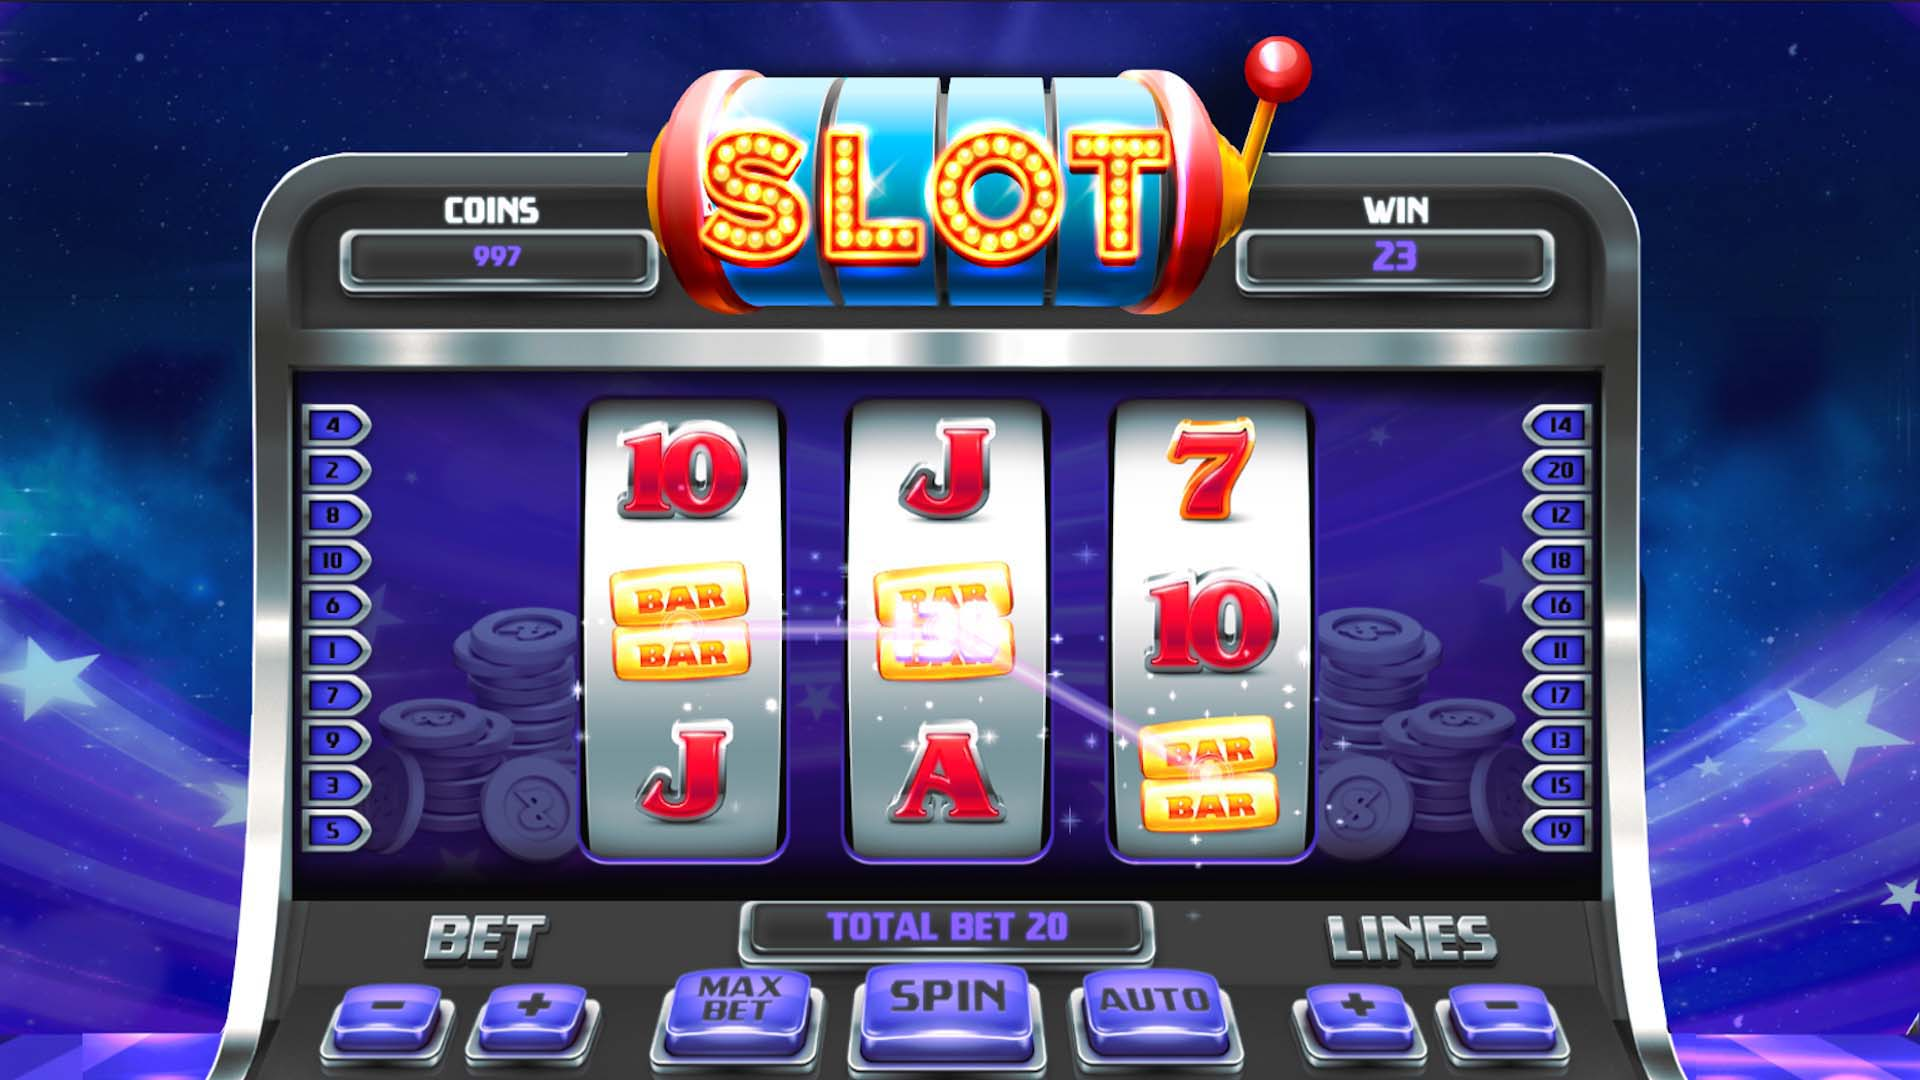 How to win on slots at the online casino